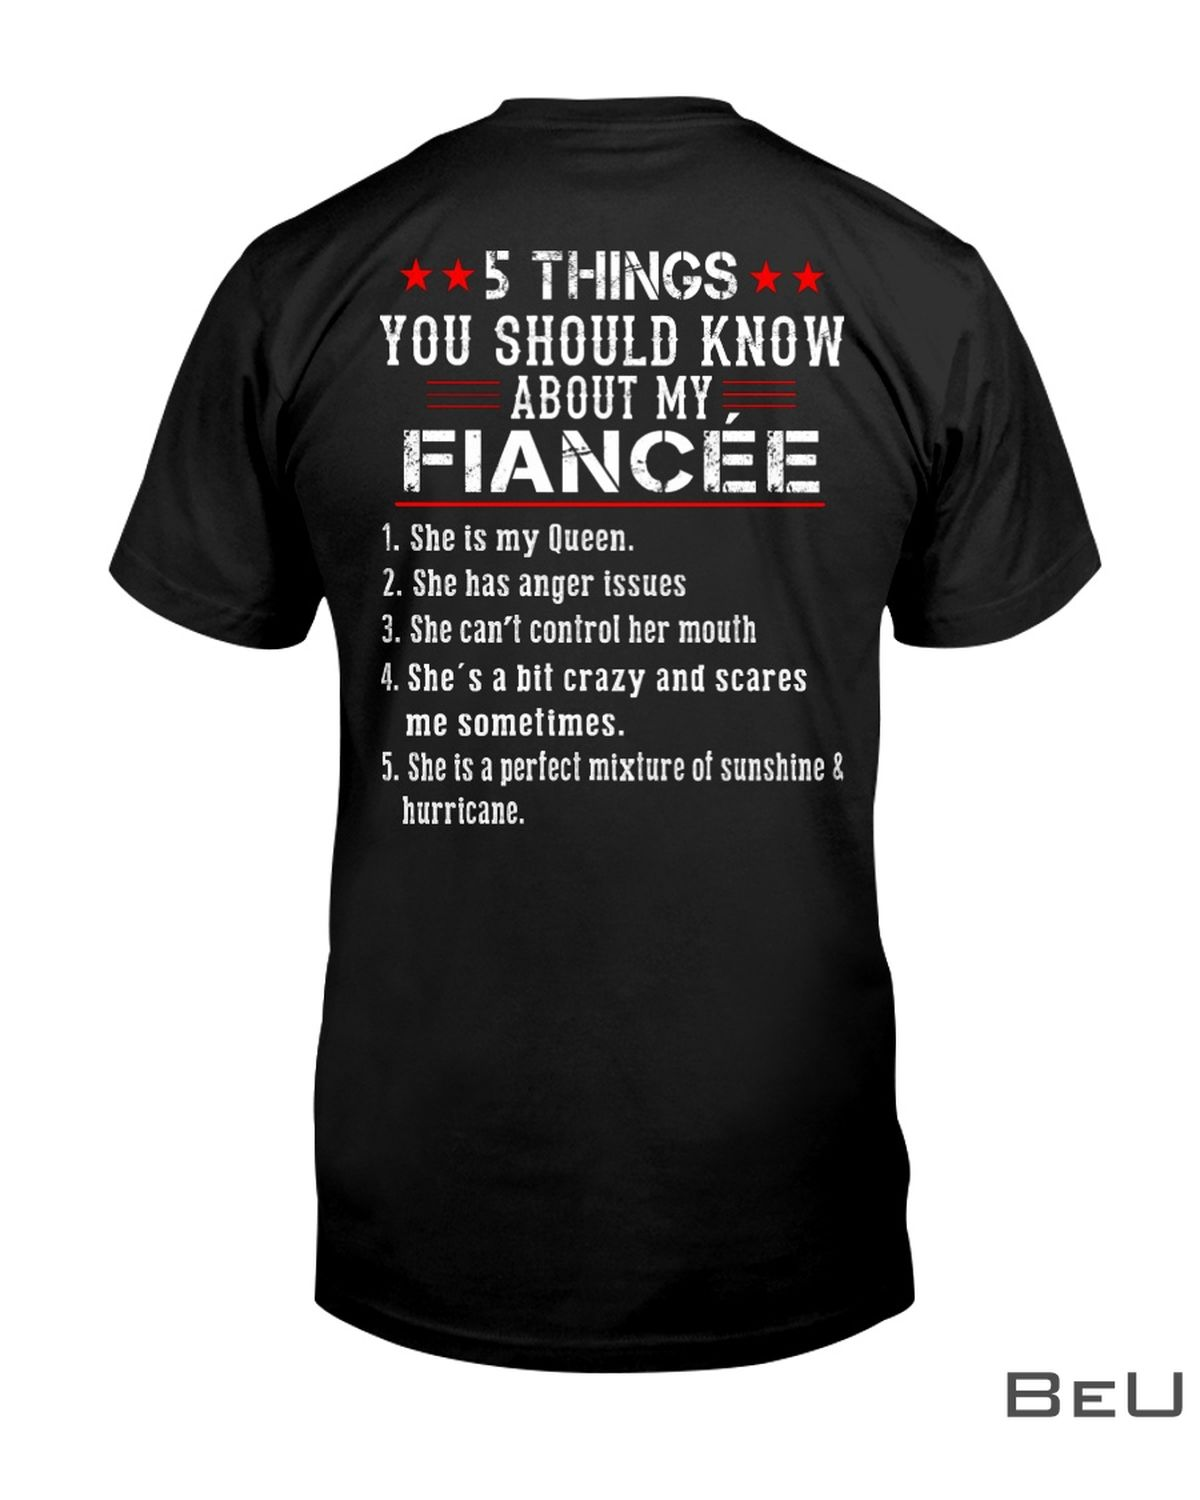 5 Thing You Should Know About My Fiancée Shirt, hoodie, tank top